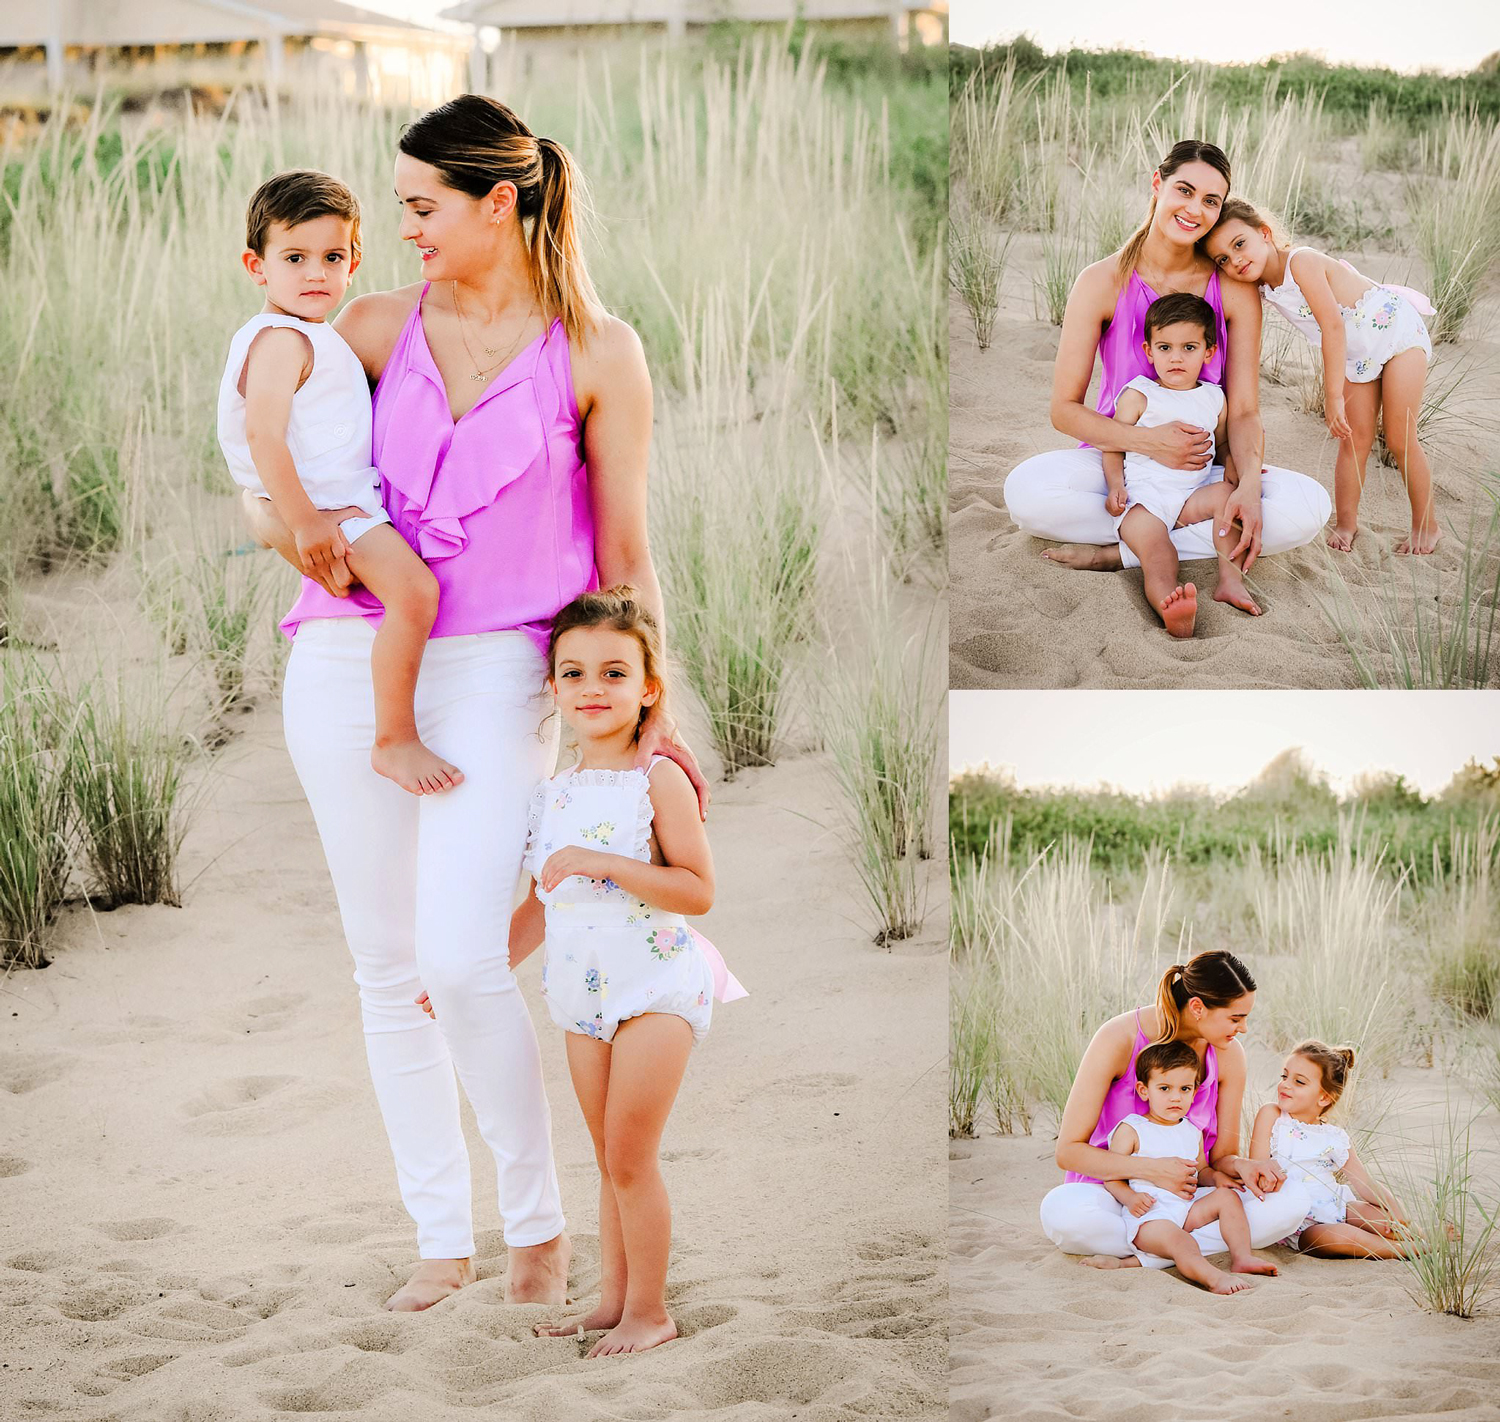 creative-family-beach-photos-melissa-bliss-photography-virginia-beach-lifestyle-photographer.jpg